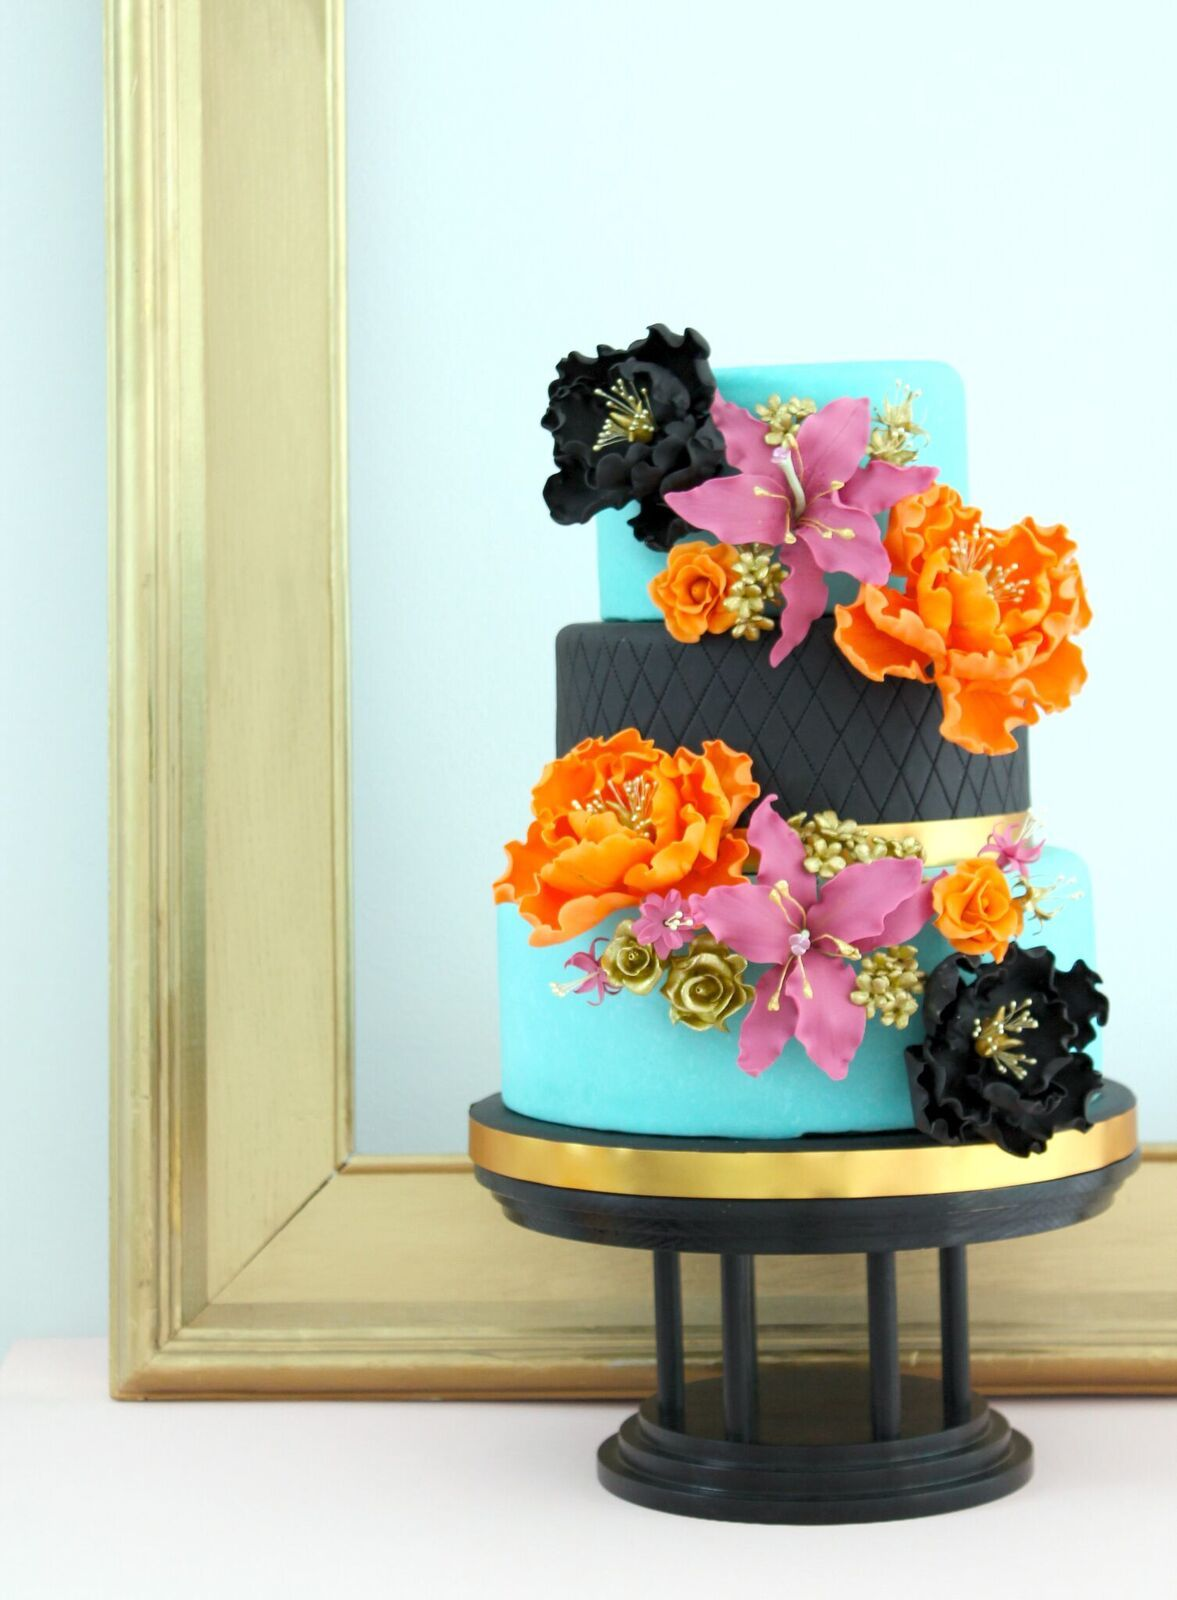 Orange and black sugar flower bouquet